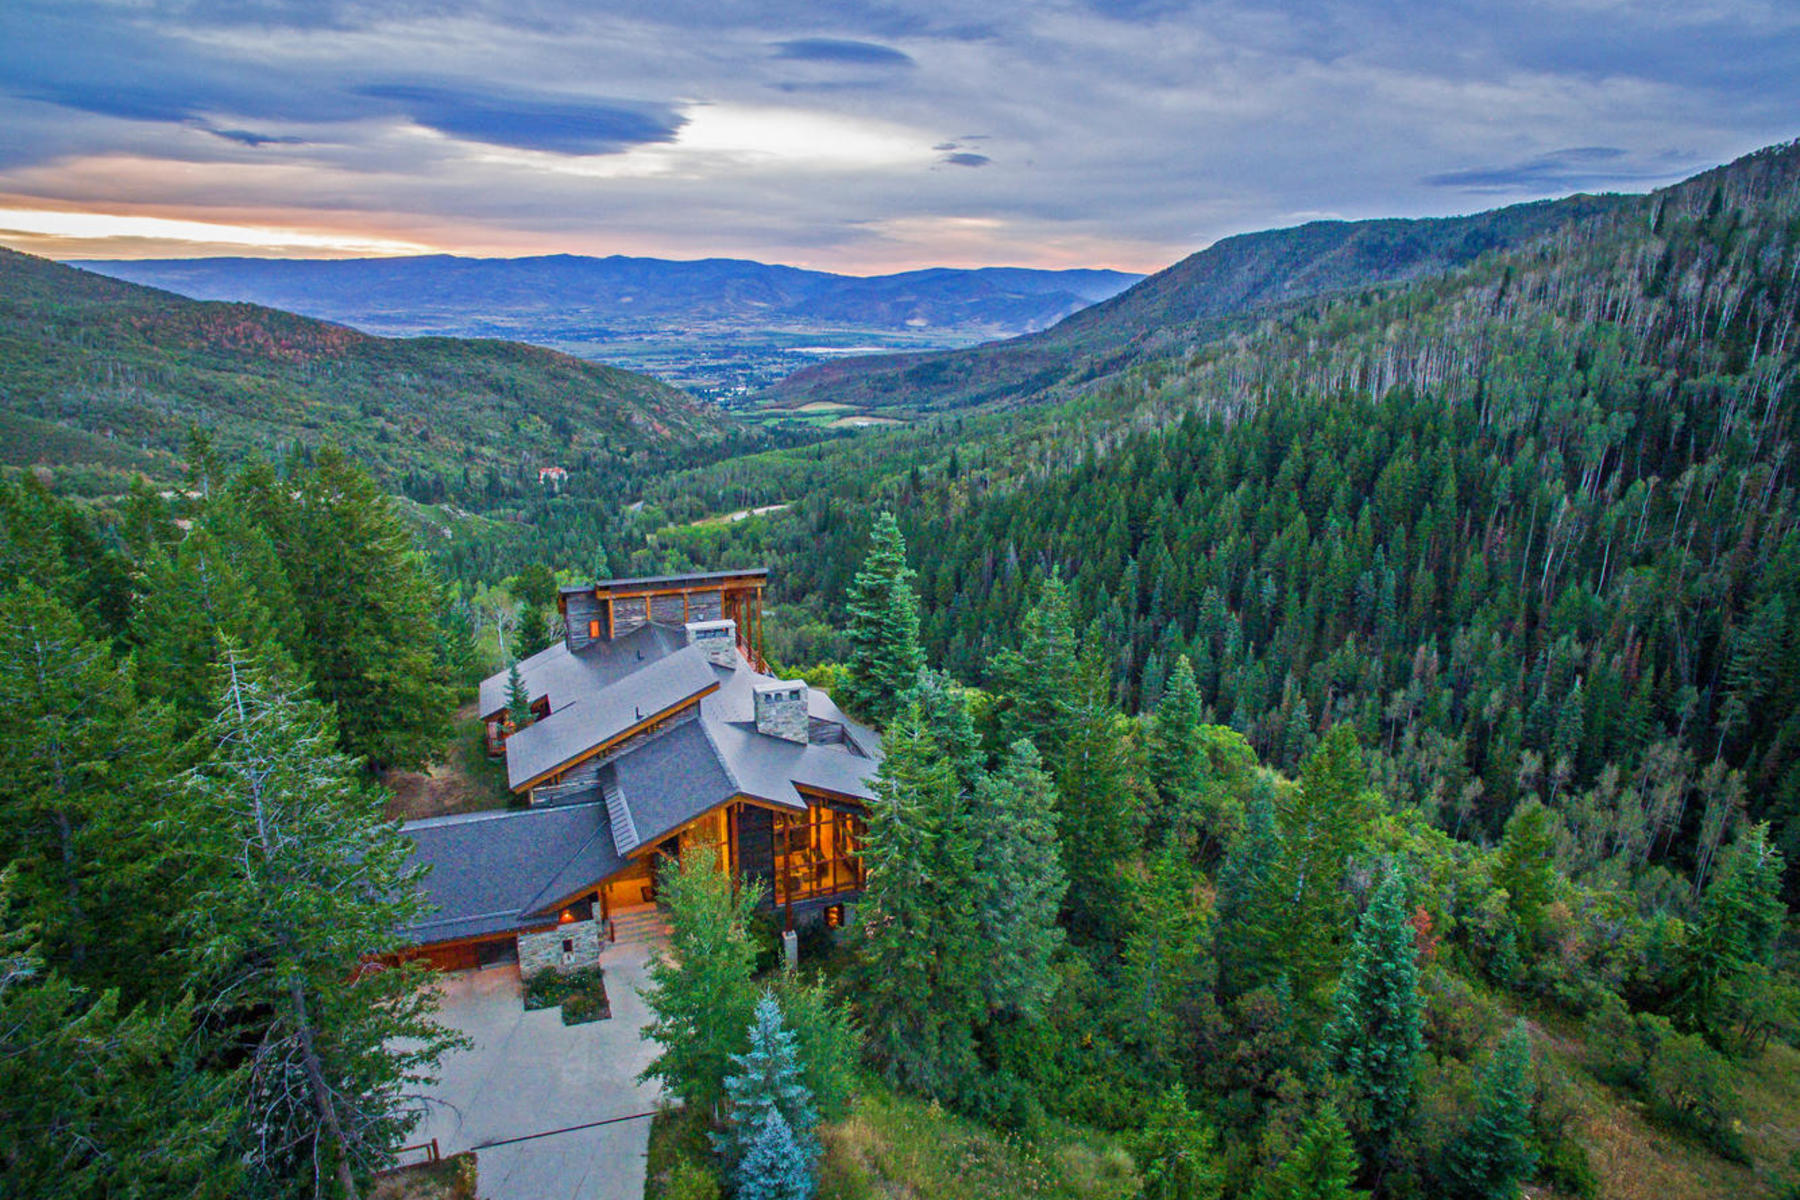 Casa Unifamiliar por un Venta en 331 Acre Estate Surrounded by Forest Land in Snake Creek Canyon 3888 Seymour Rd Midway, Utah, 84049 Estados Unidos